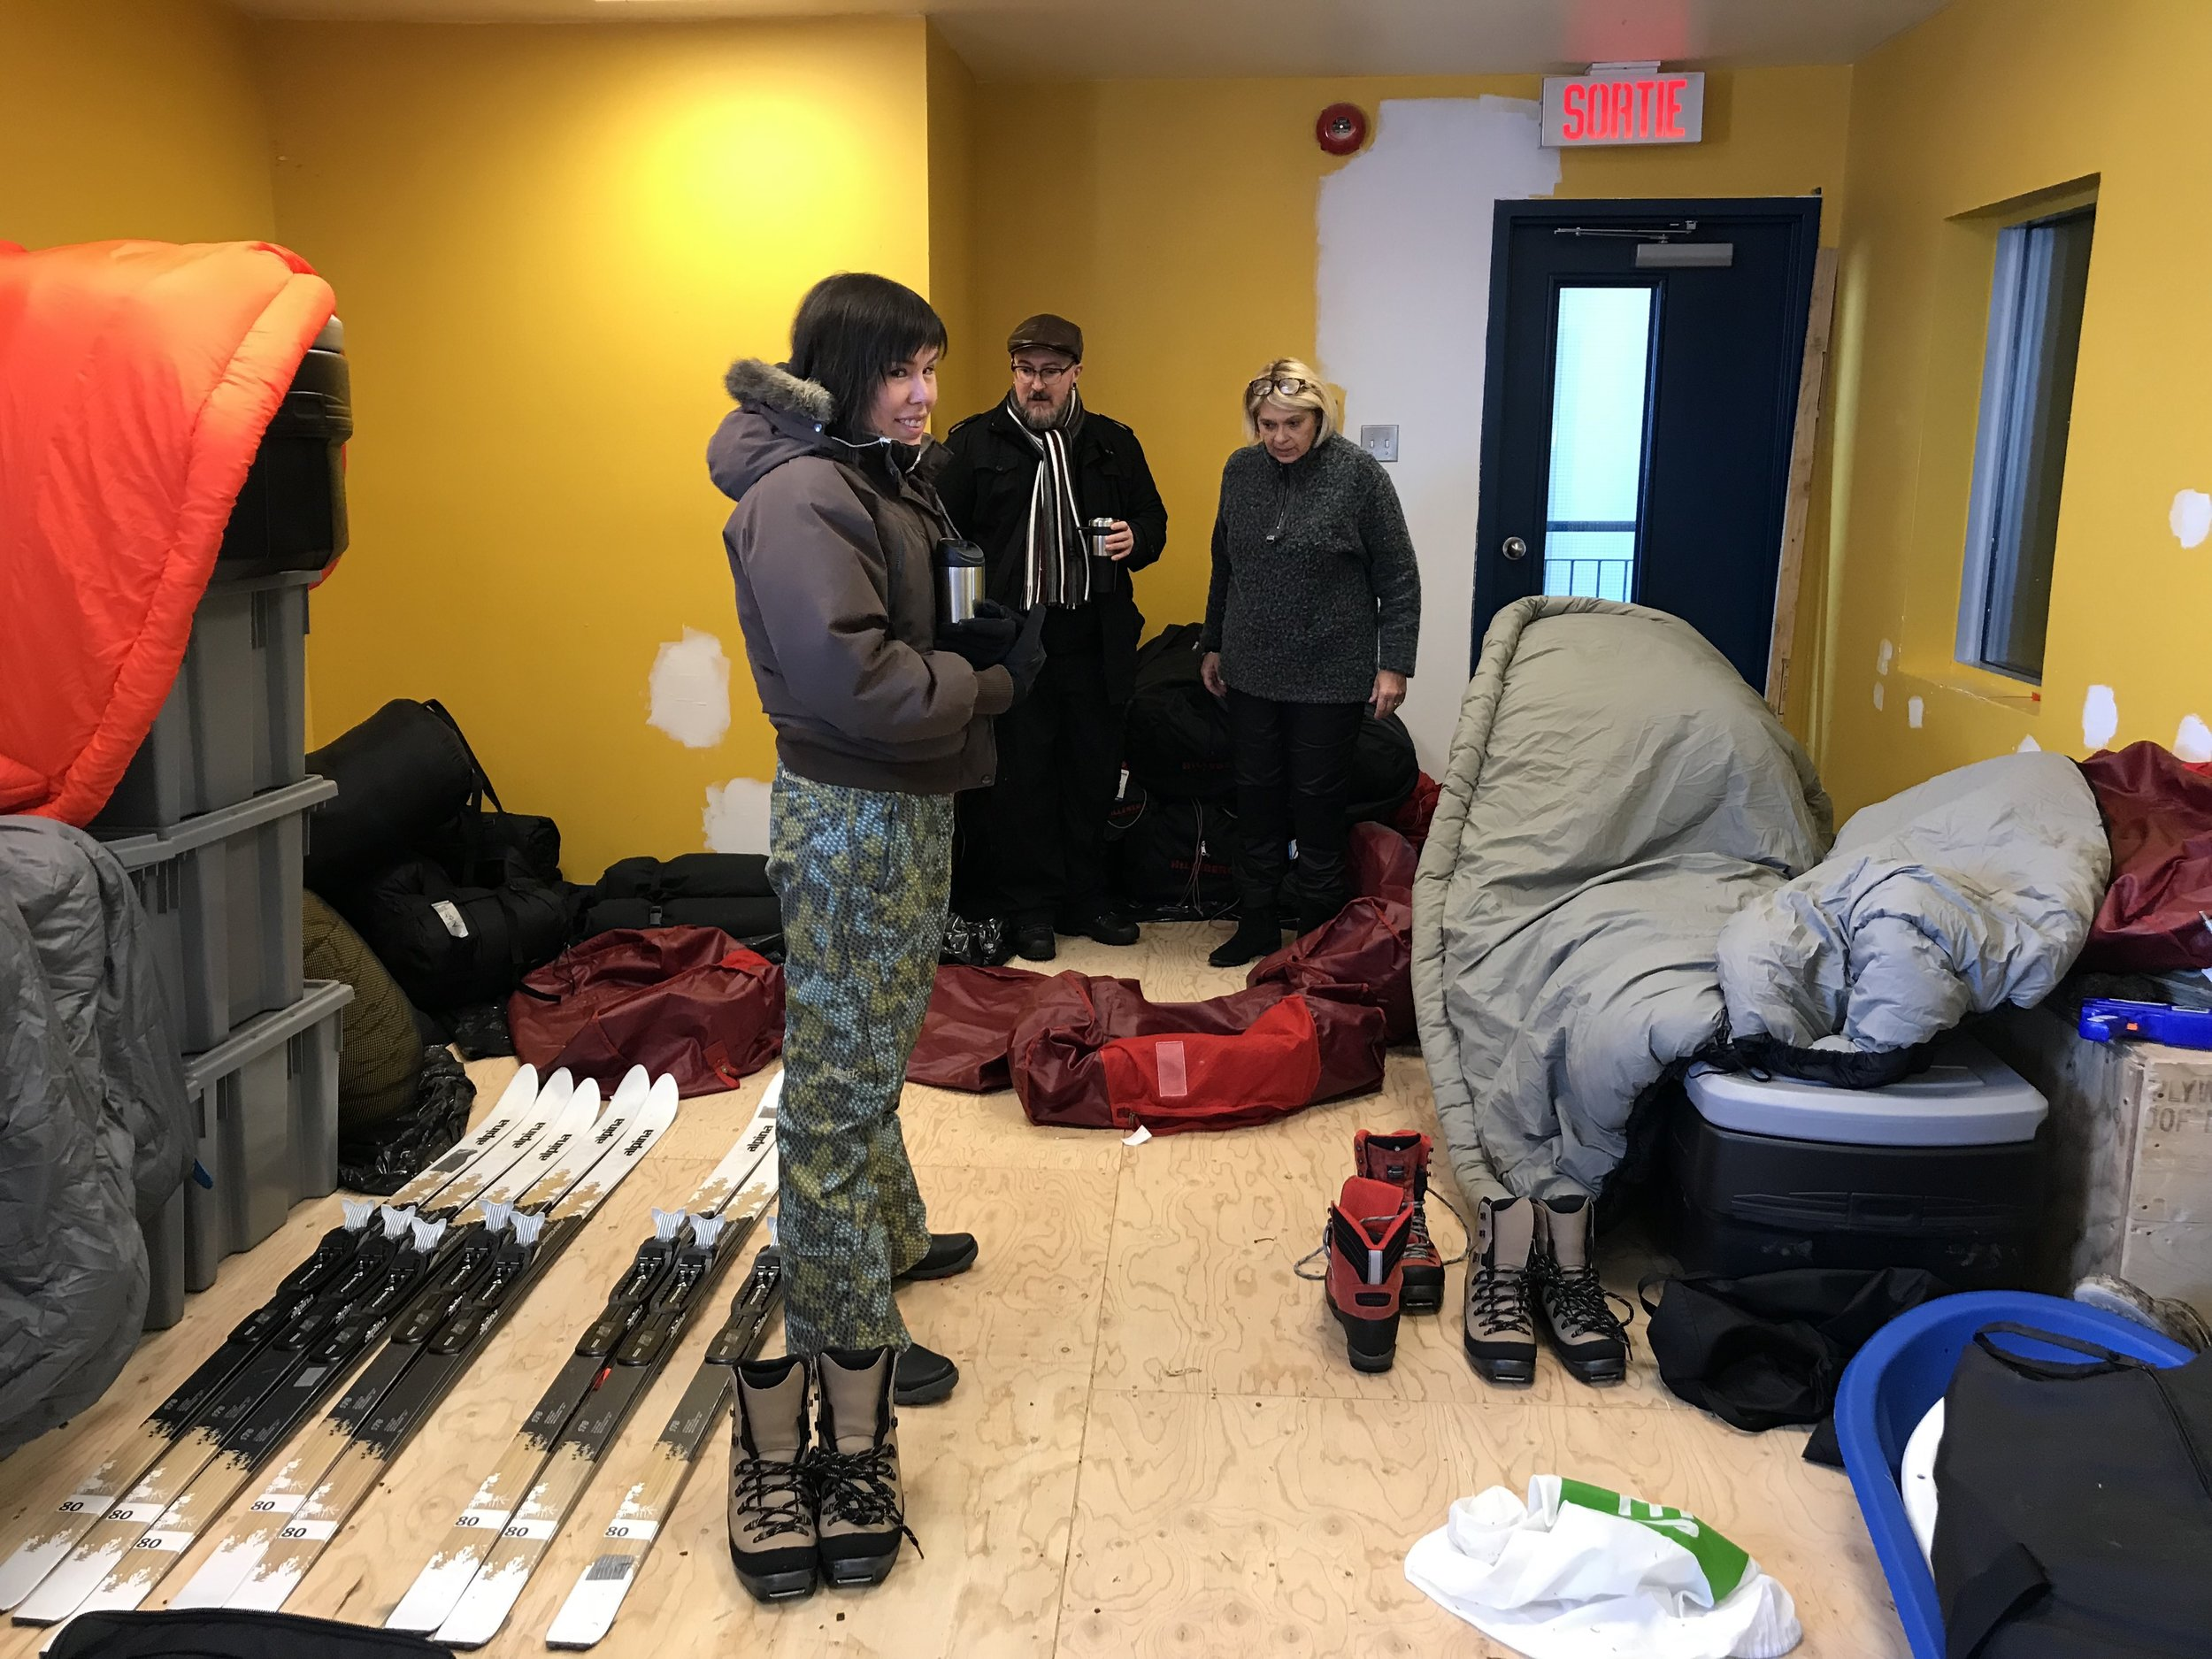 Courtney, Glenn and Dorothy check out all the state of the art Arctic Guide gear